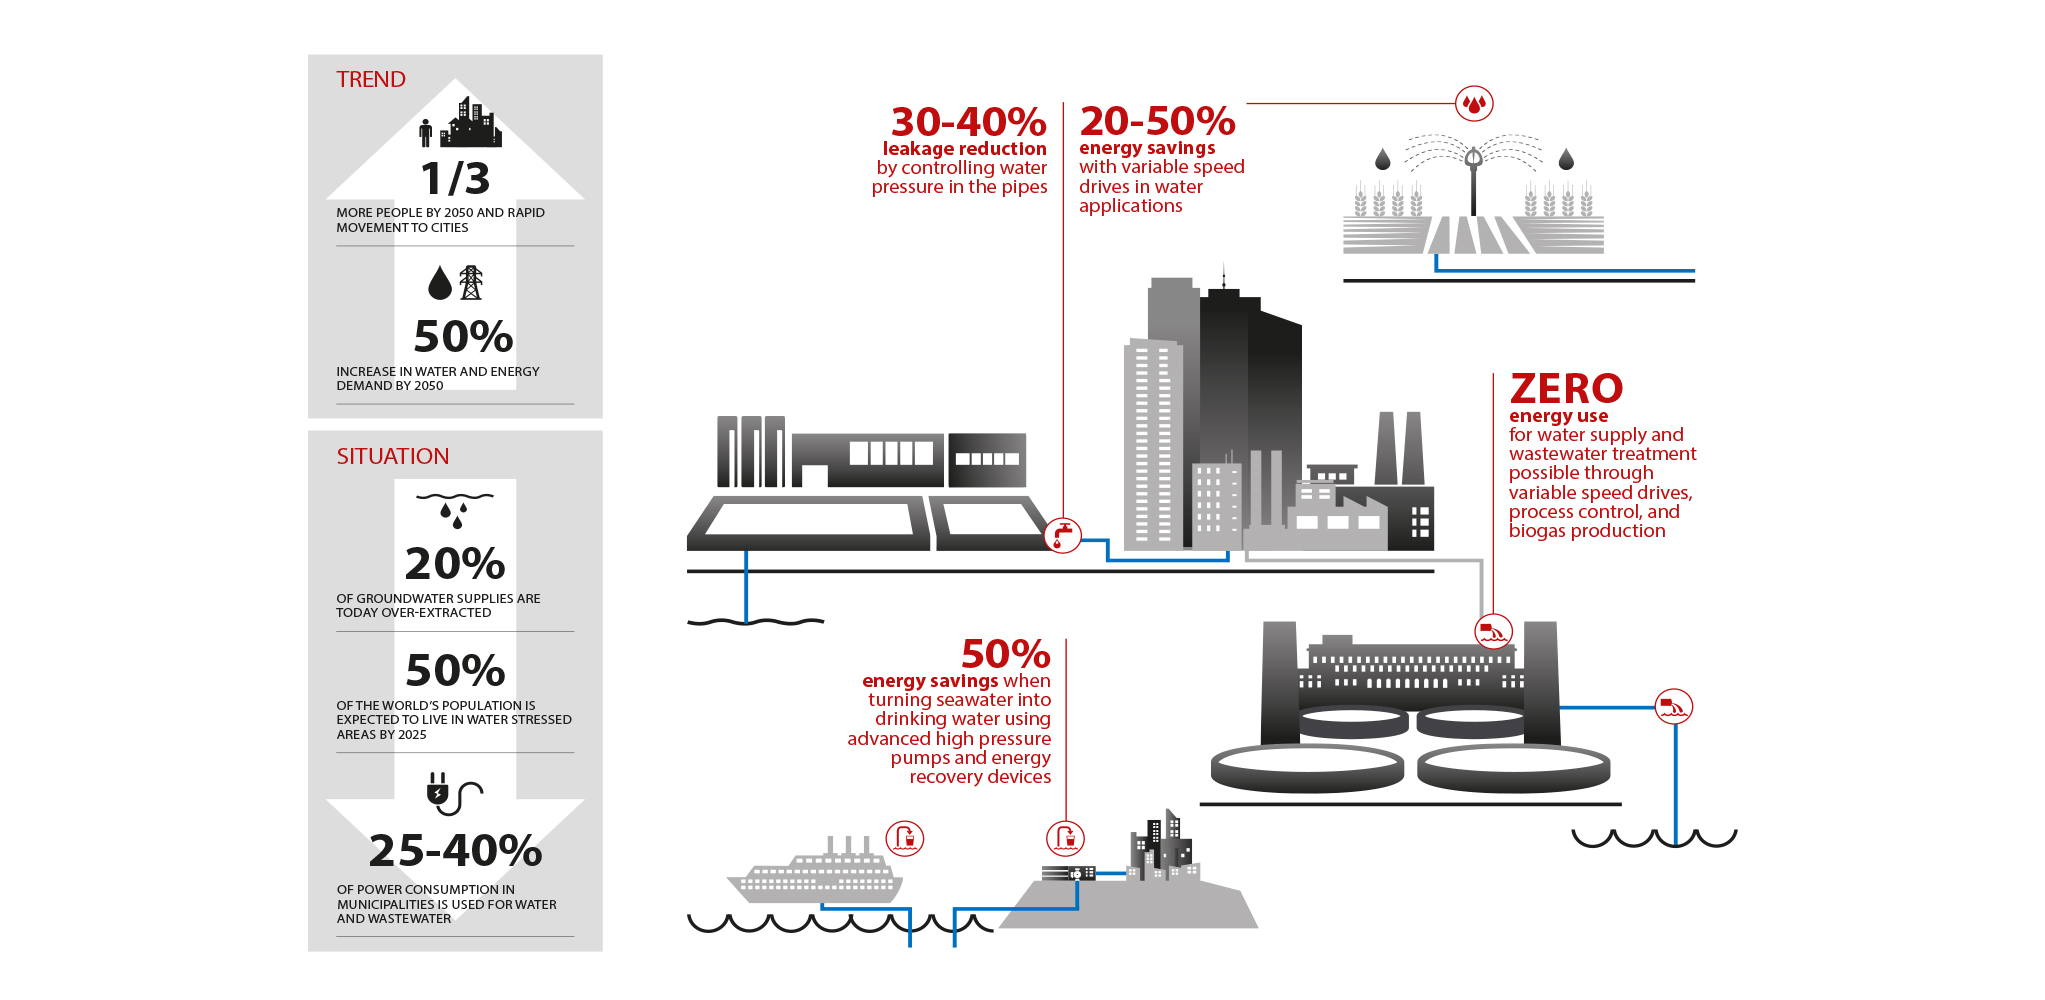 Danfoss is ready to meet global water challenges